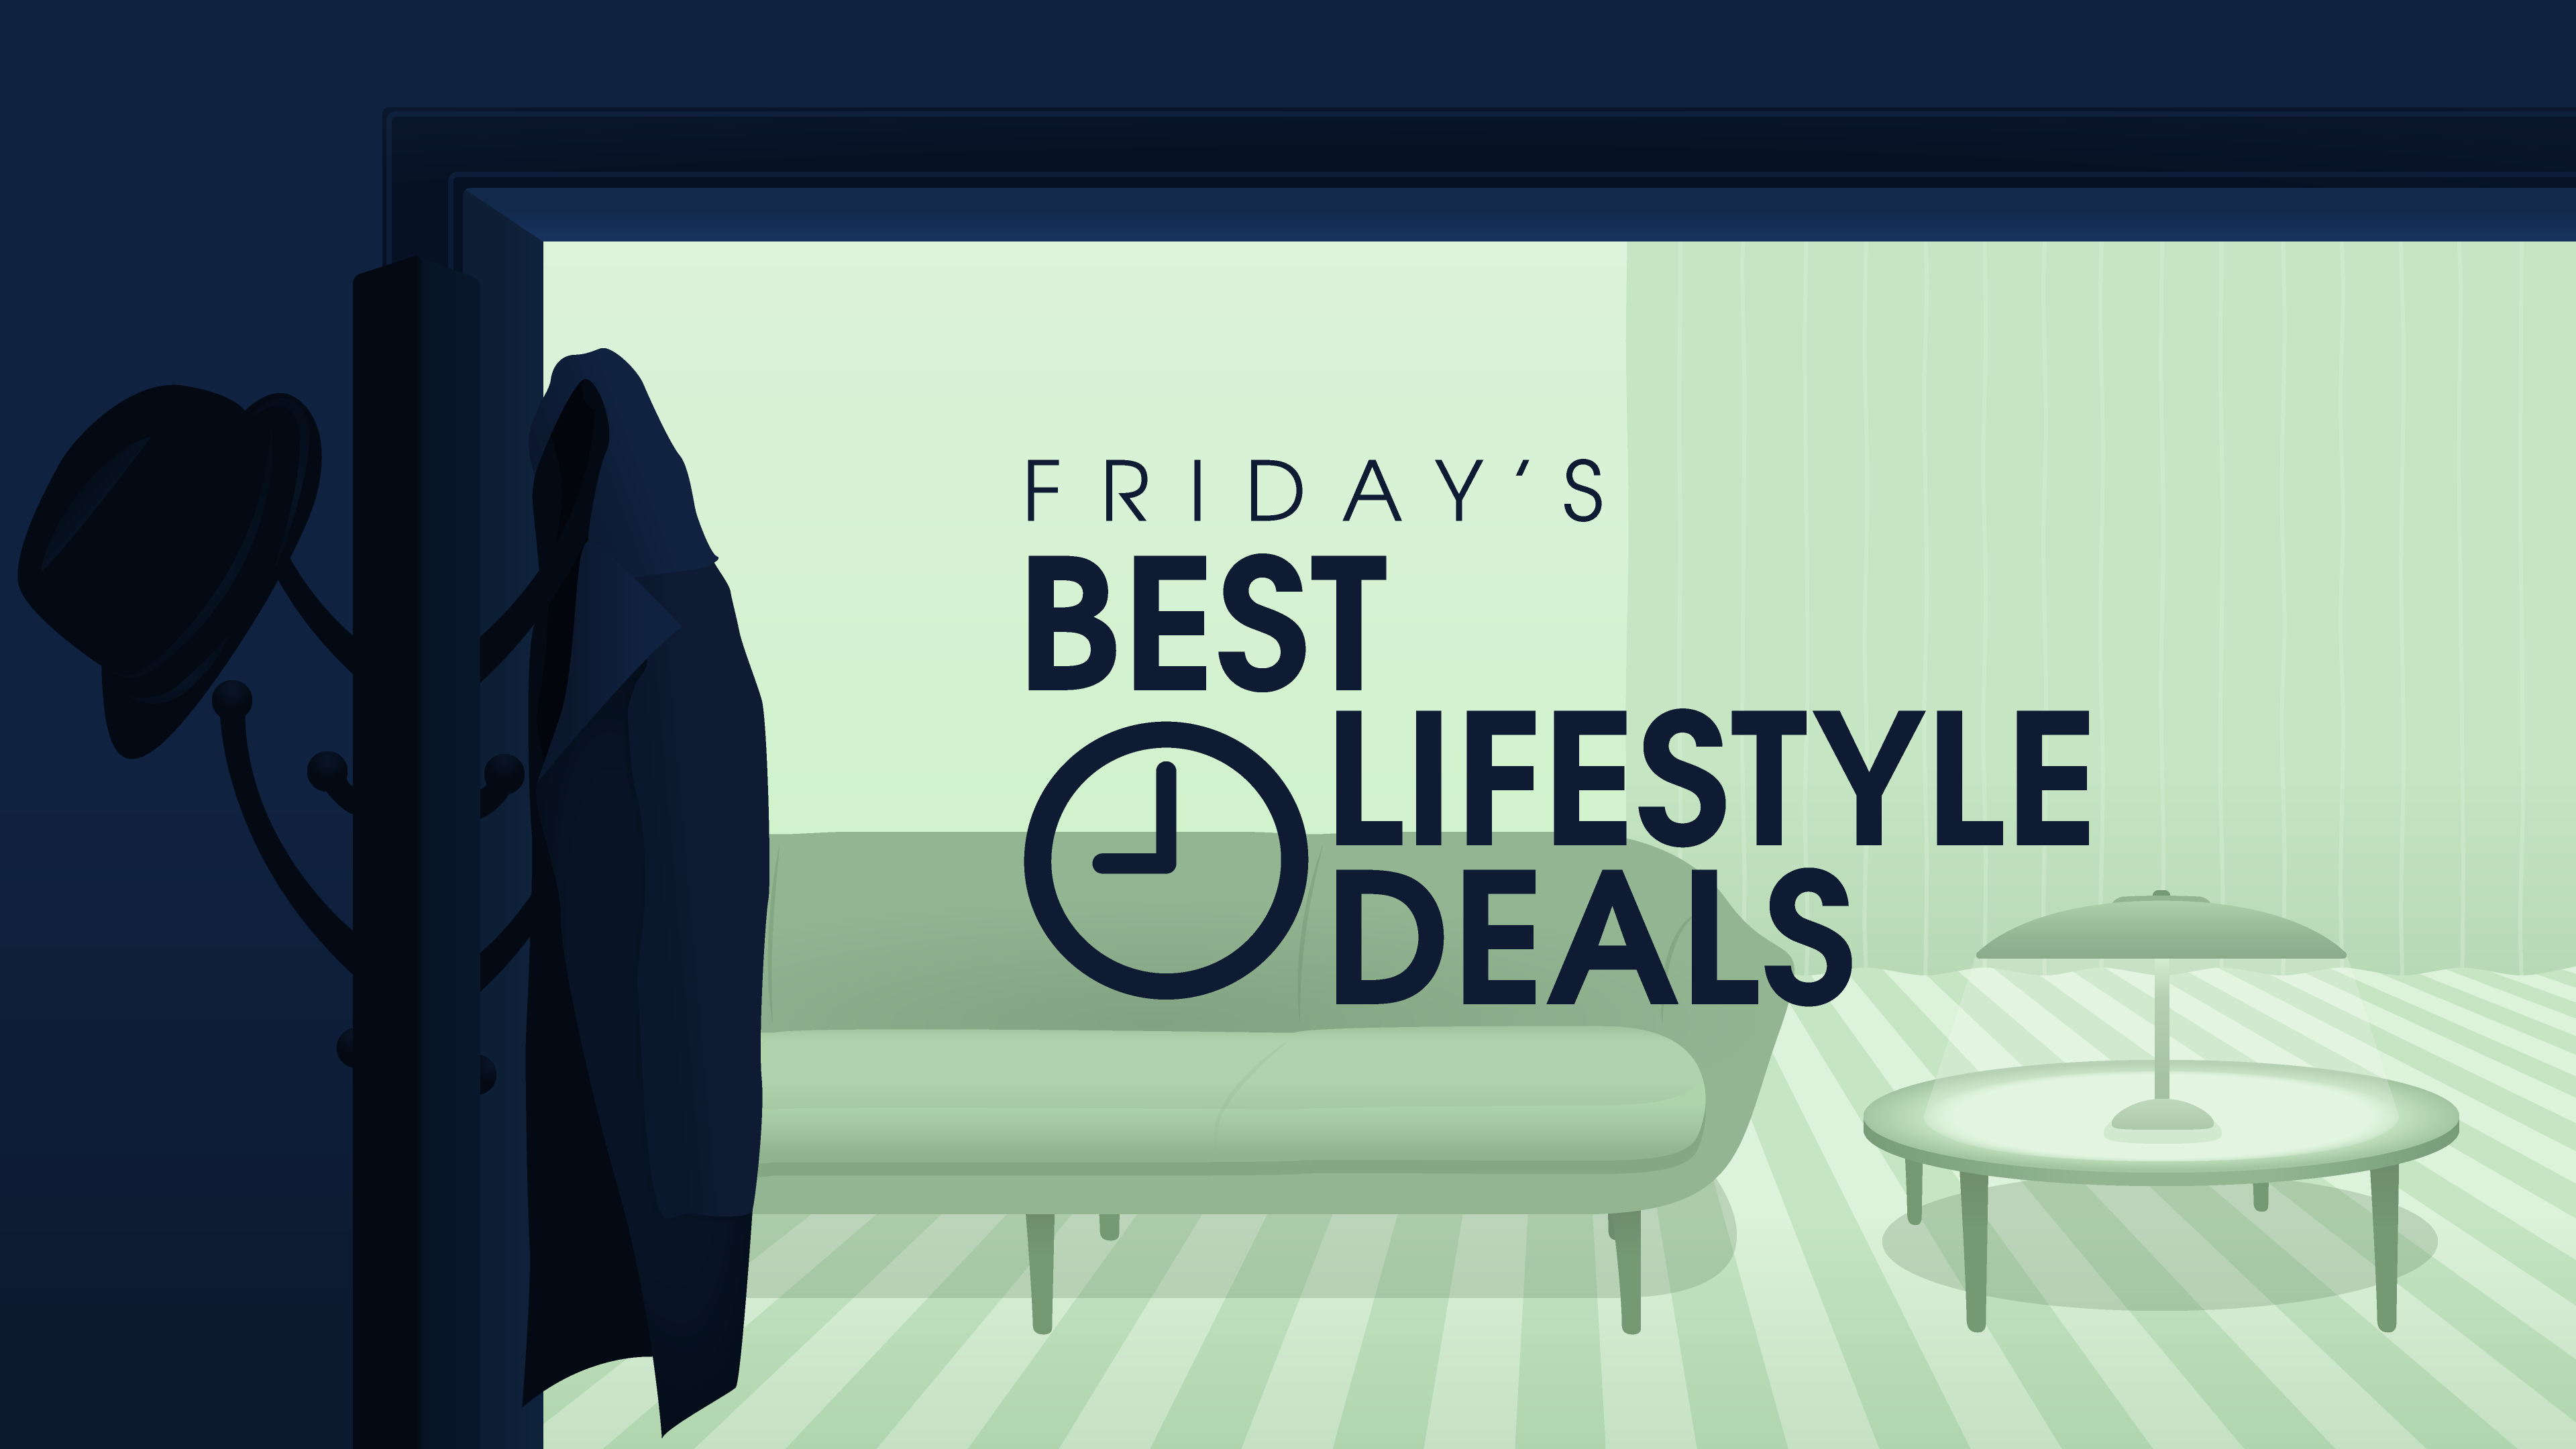 Watch Daily Deals: 30 Off At Banana Republic, Free Shipping At Philosophy video